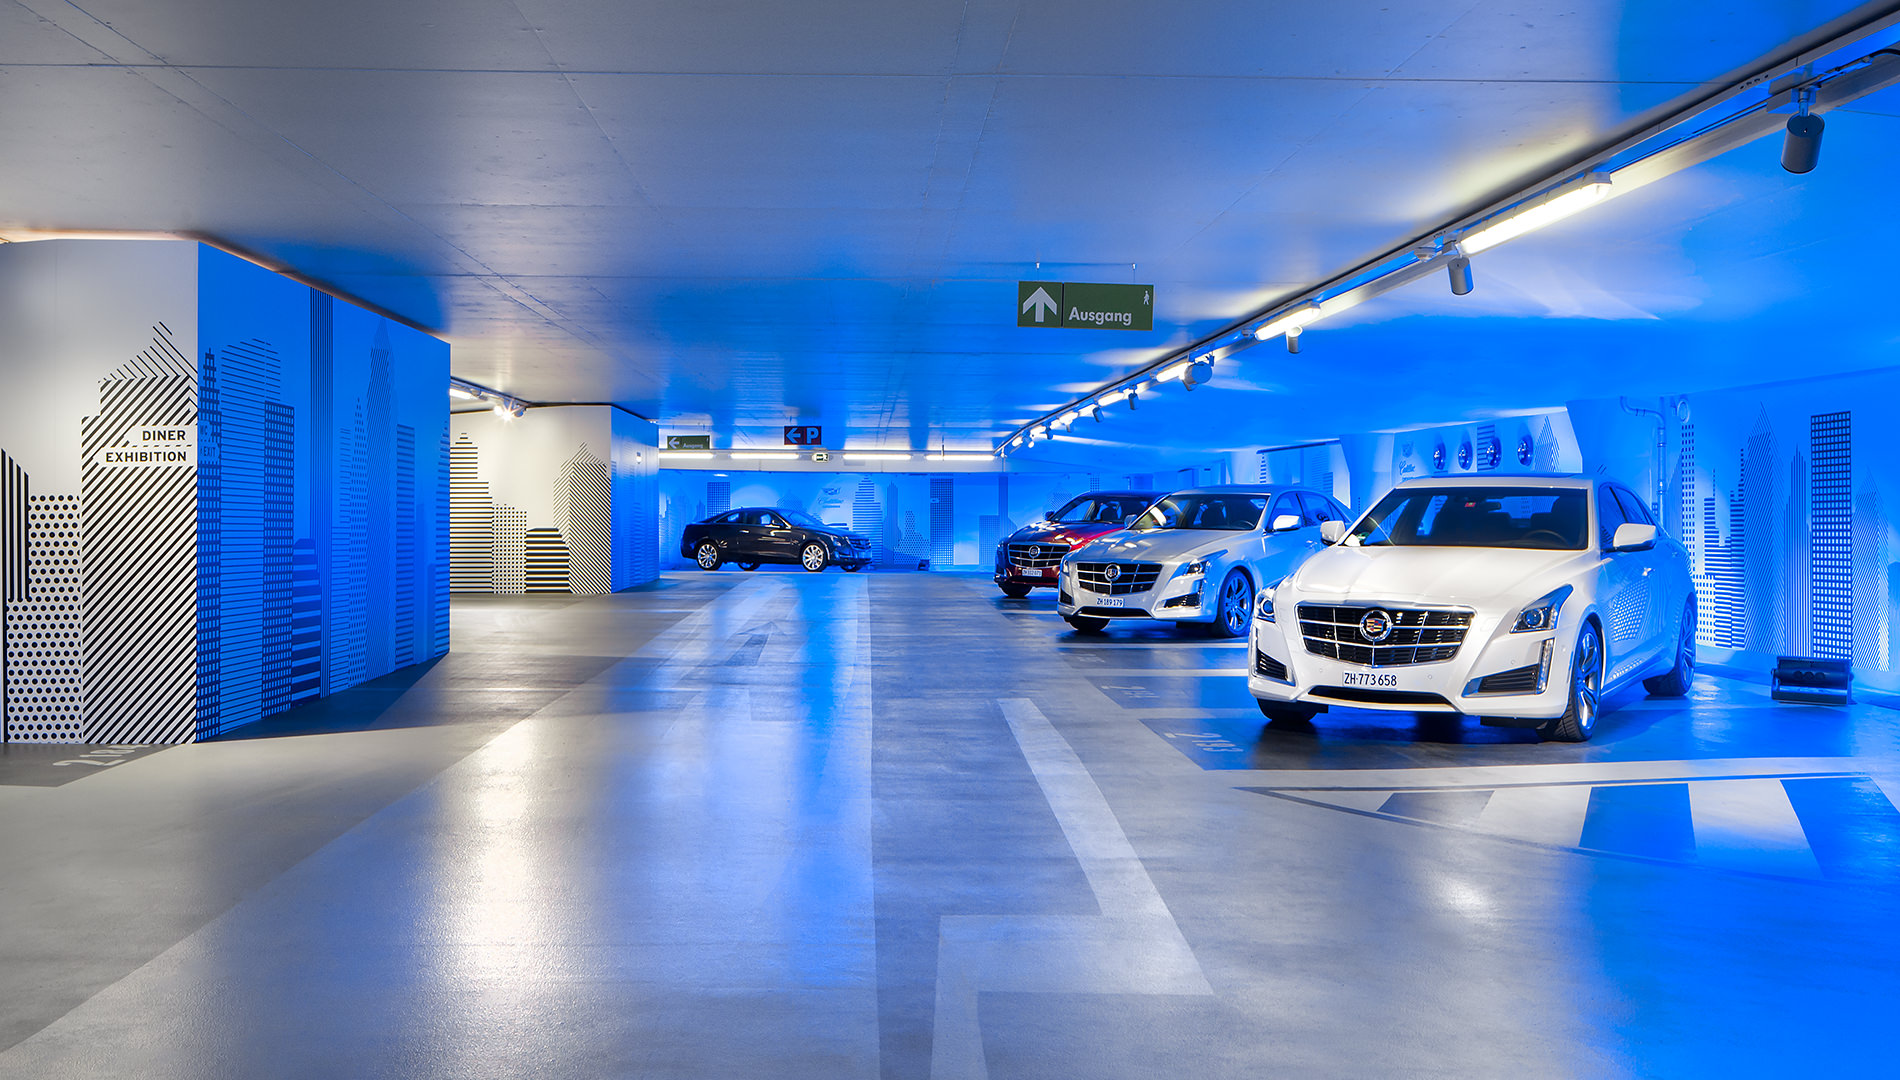 Messe Design Live Kommunikation Berlin Cadillac Experience Autos Parkhaus Going Places EventLabs